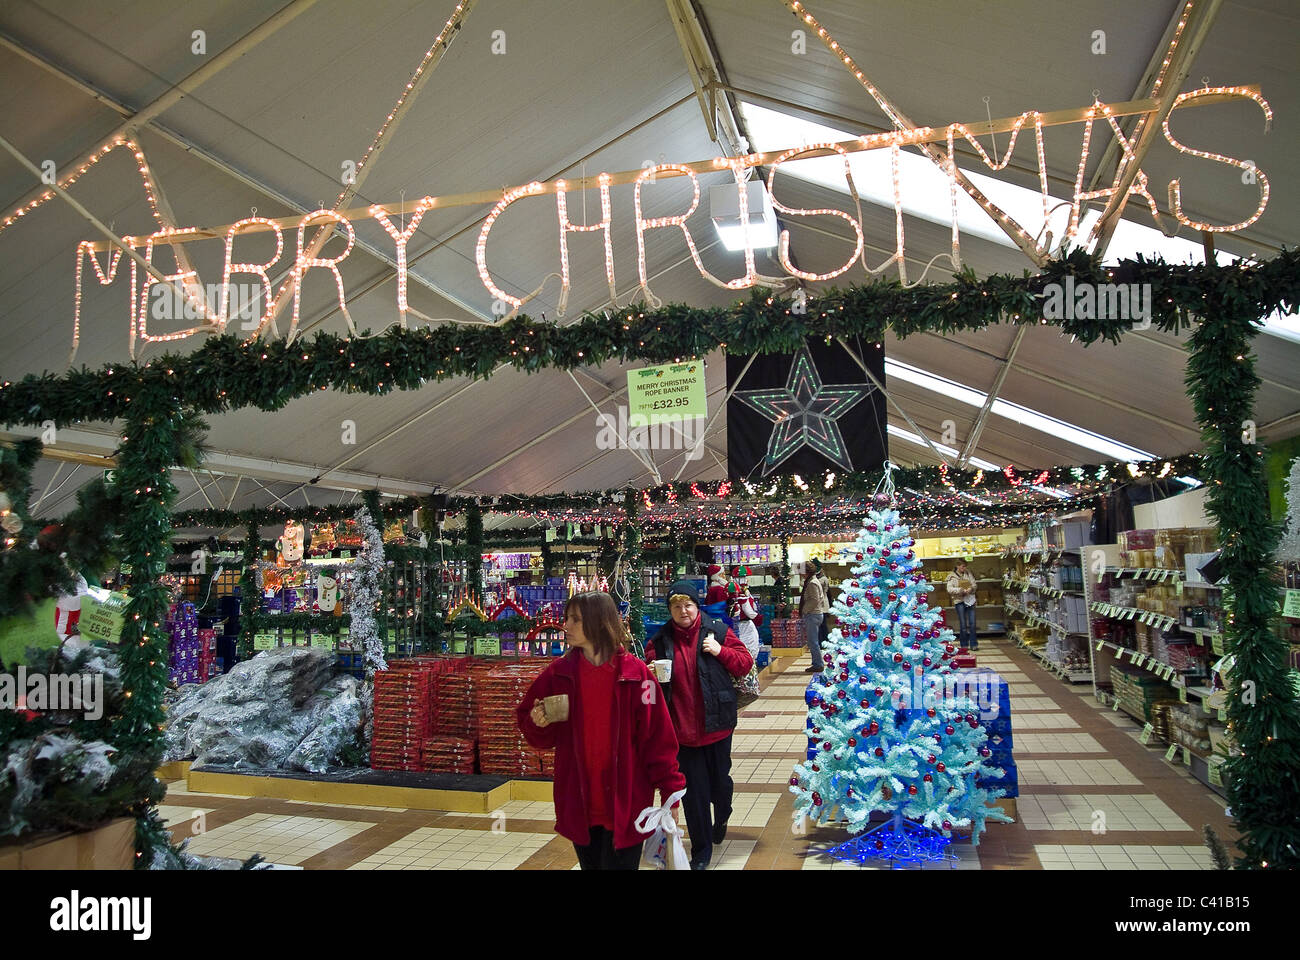 tacky christmas decorations for sale in a gardening centre stock image - Christmas Decorations Sale